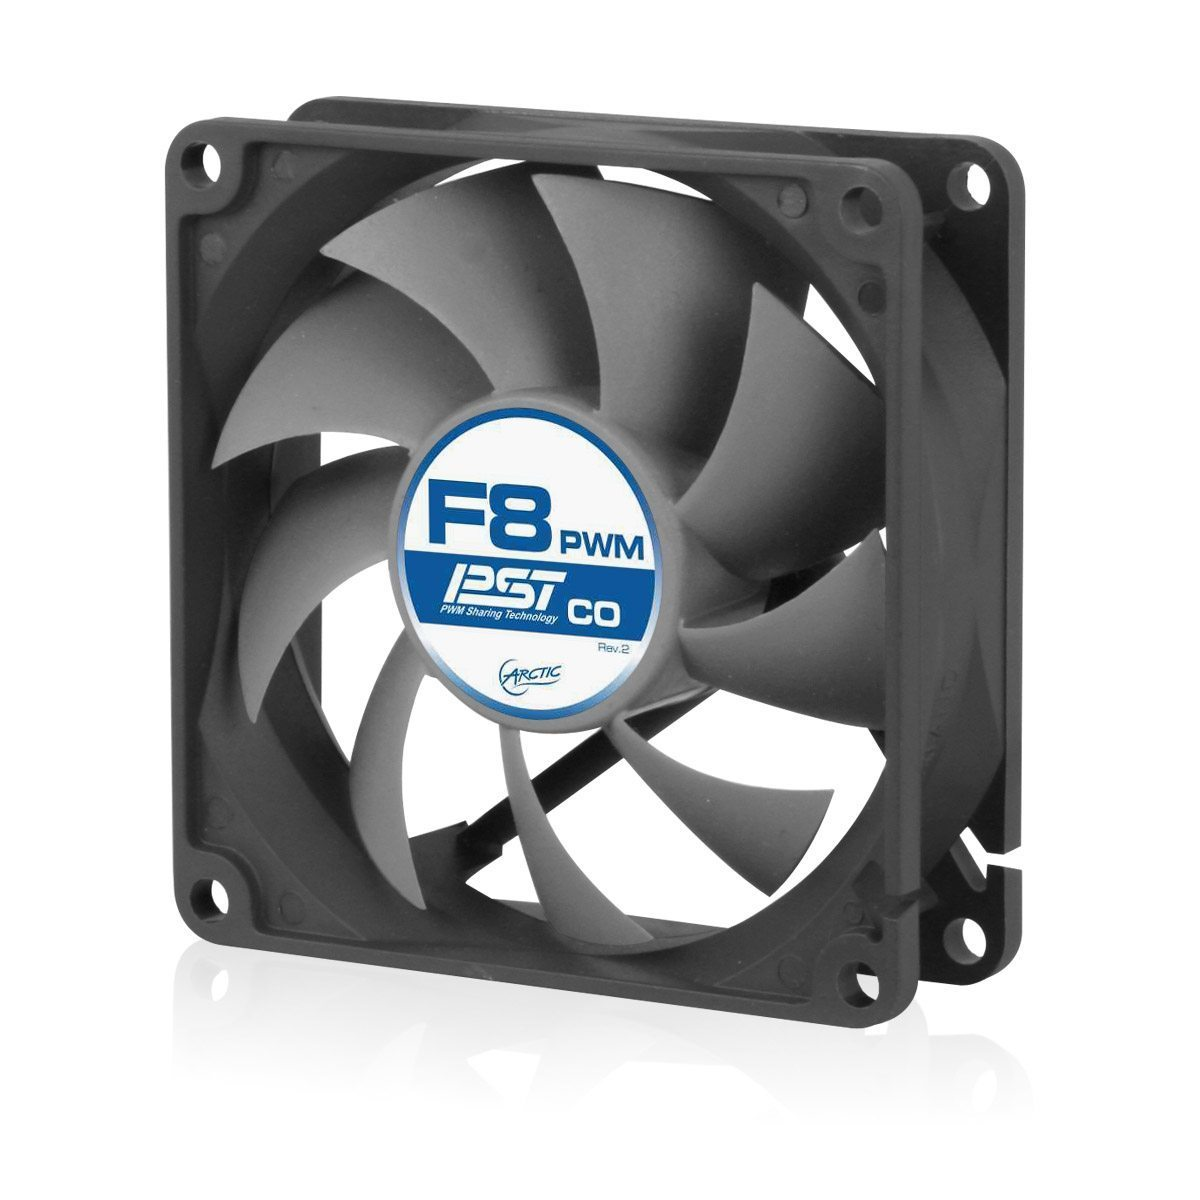 Arctic Fan F8 PWM PST CO - 2Ball - 850-2000rpm